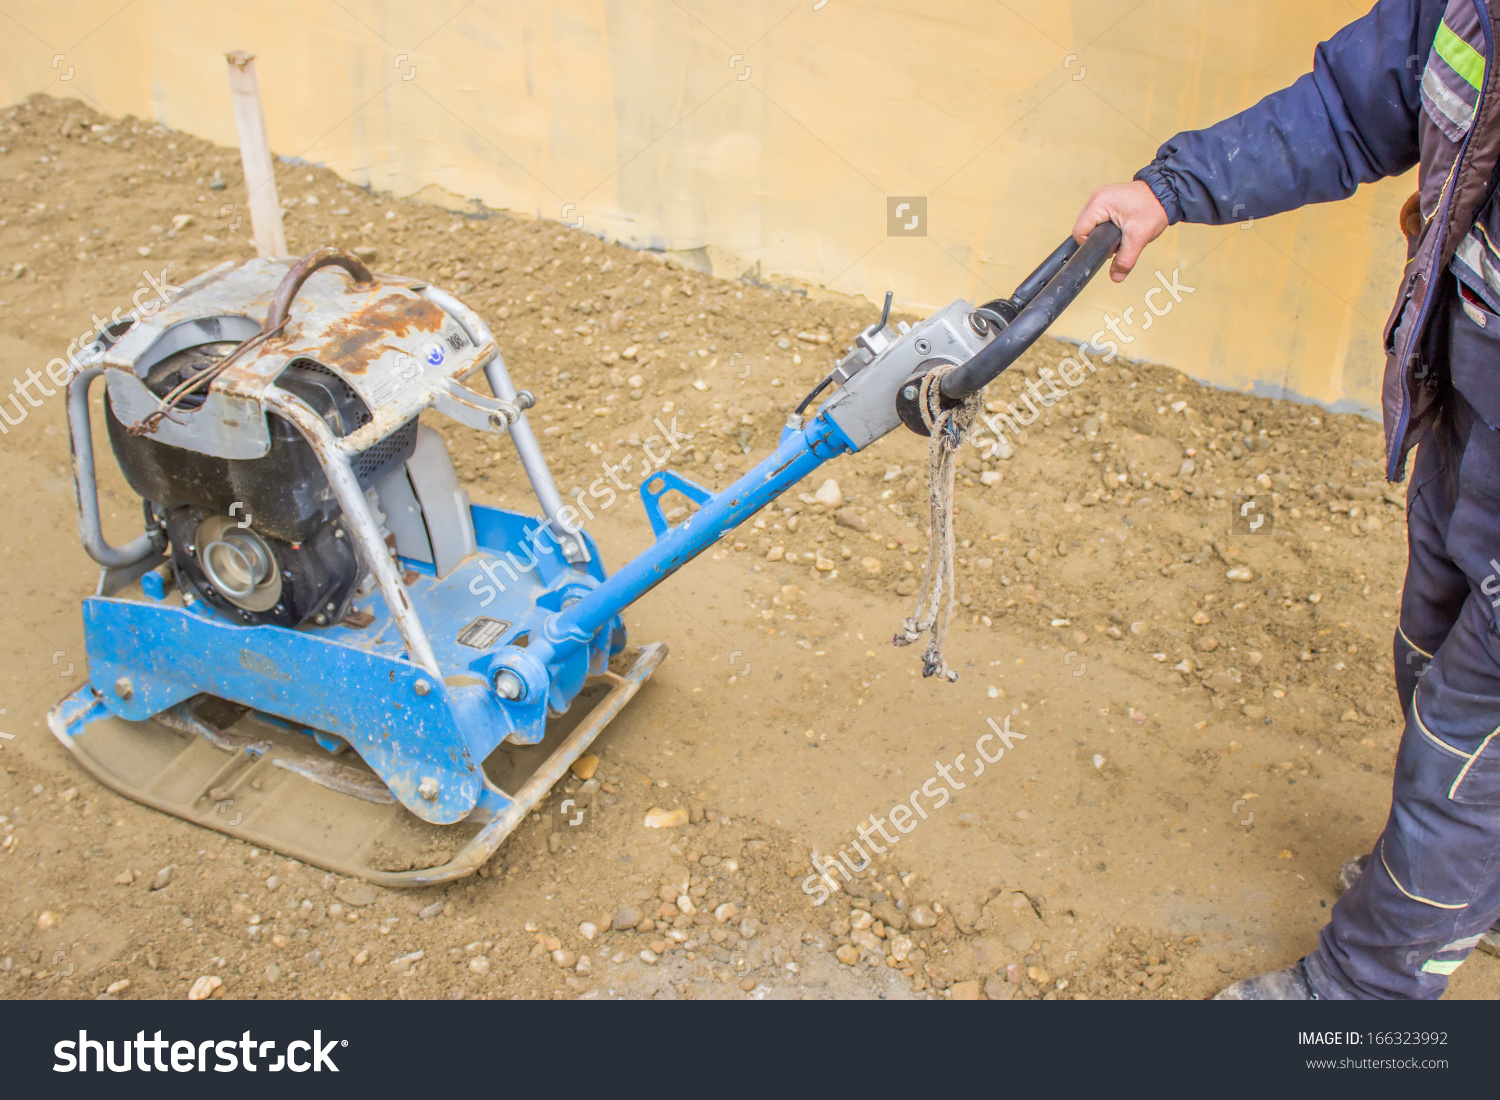 Worker Vibrating Plate Compactor Machine Sand Stock Photo.